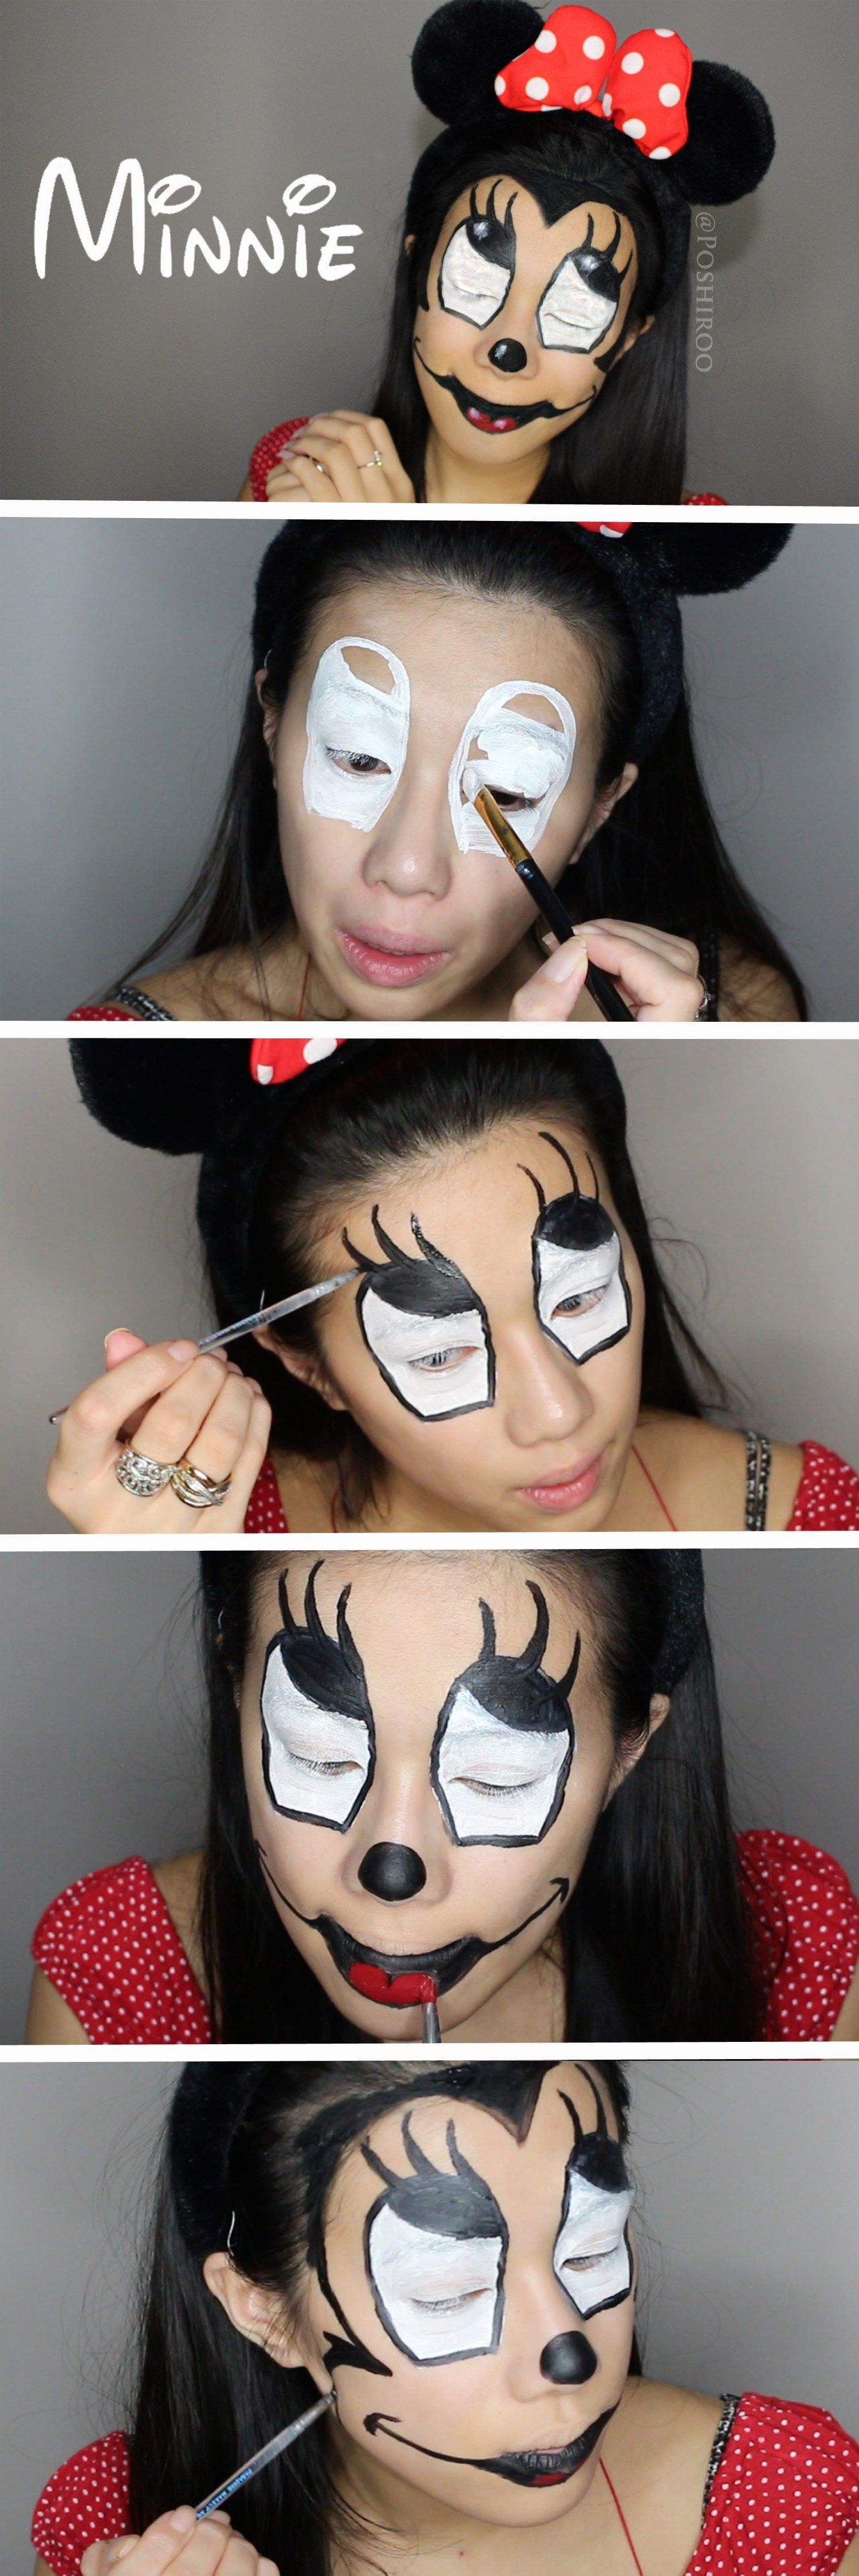 Minnie Mouse Makeup Tutorial Simple Easy Step By Step Scary Creepy